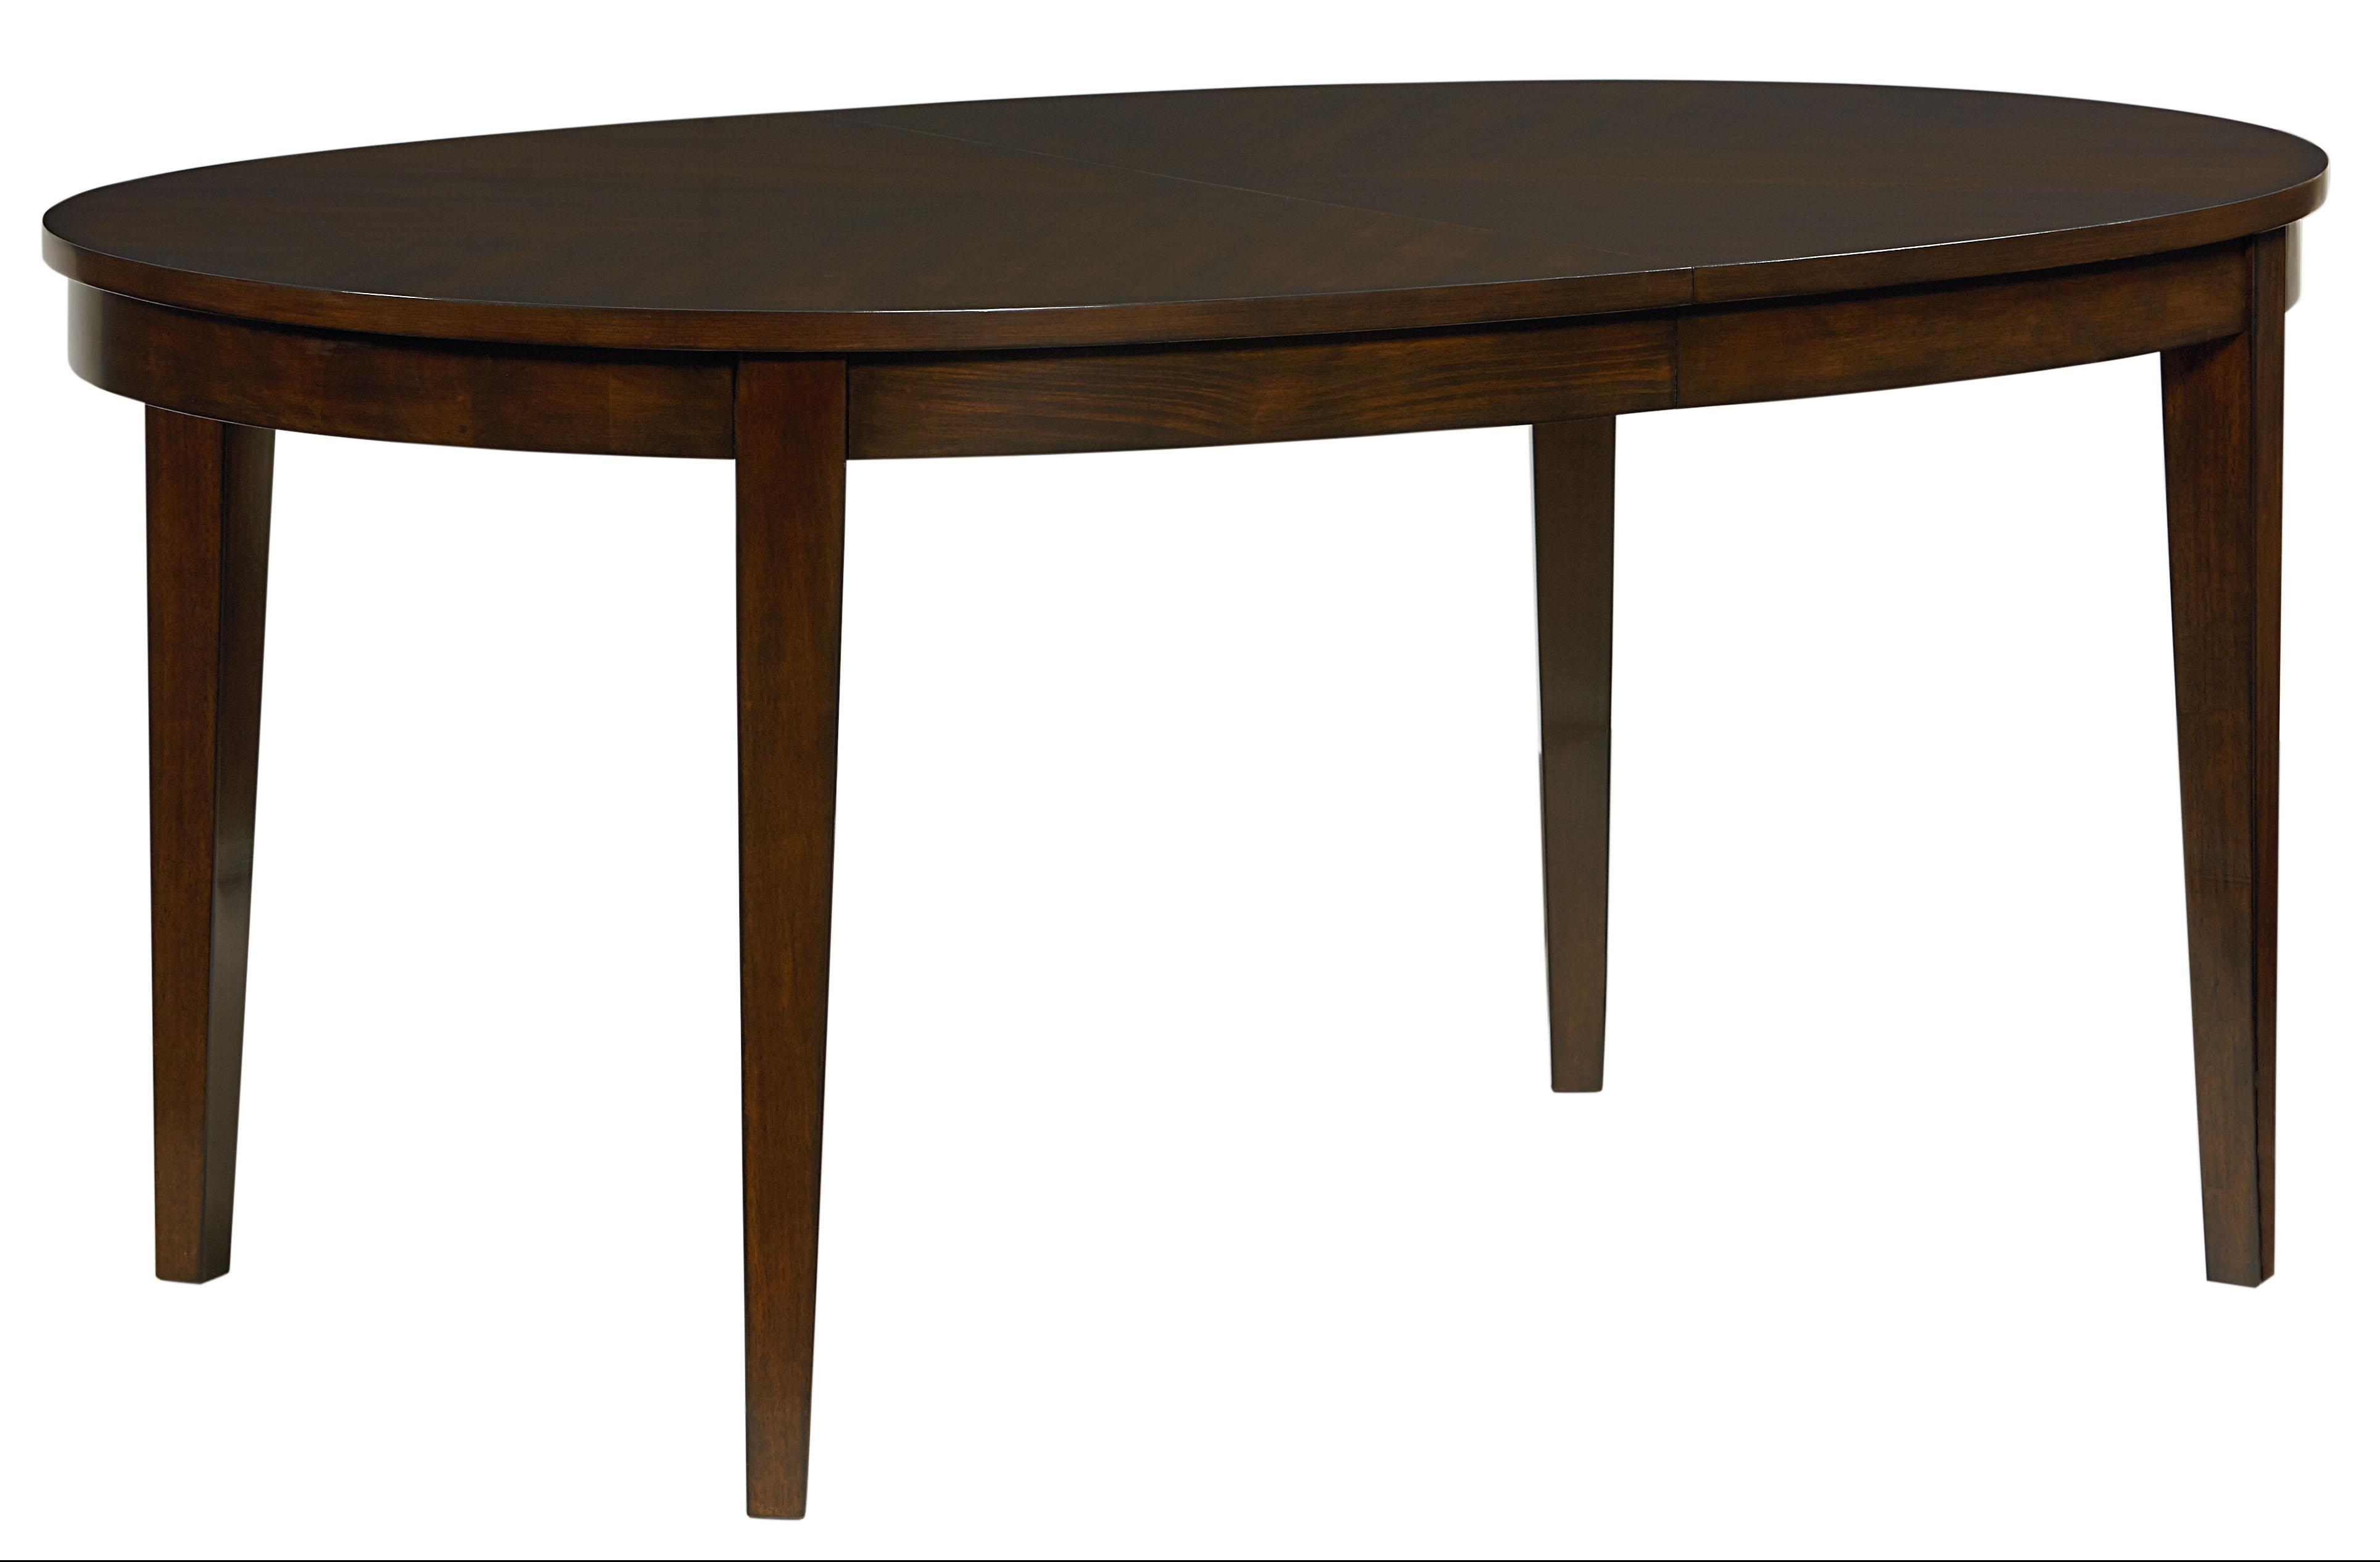 "Standard Furniture Serenity Oval Dining Table with 18"" Leaf"